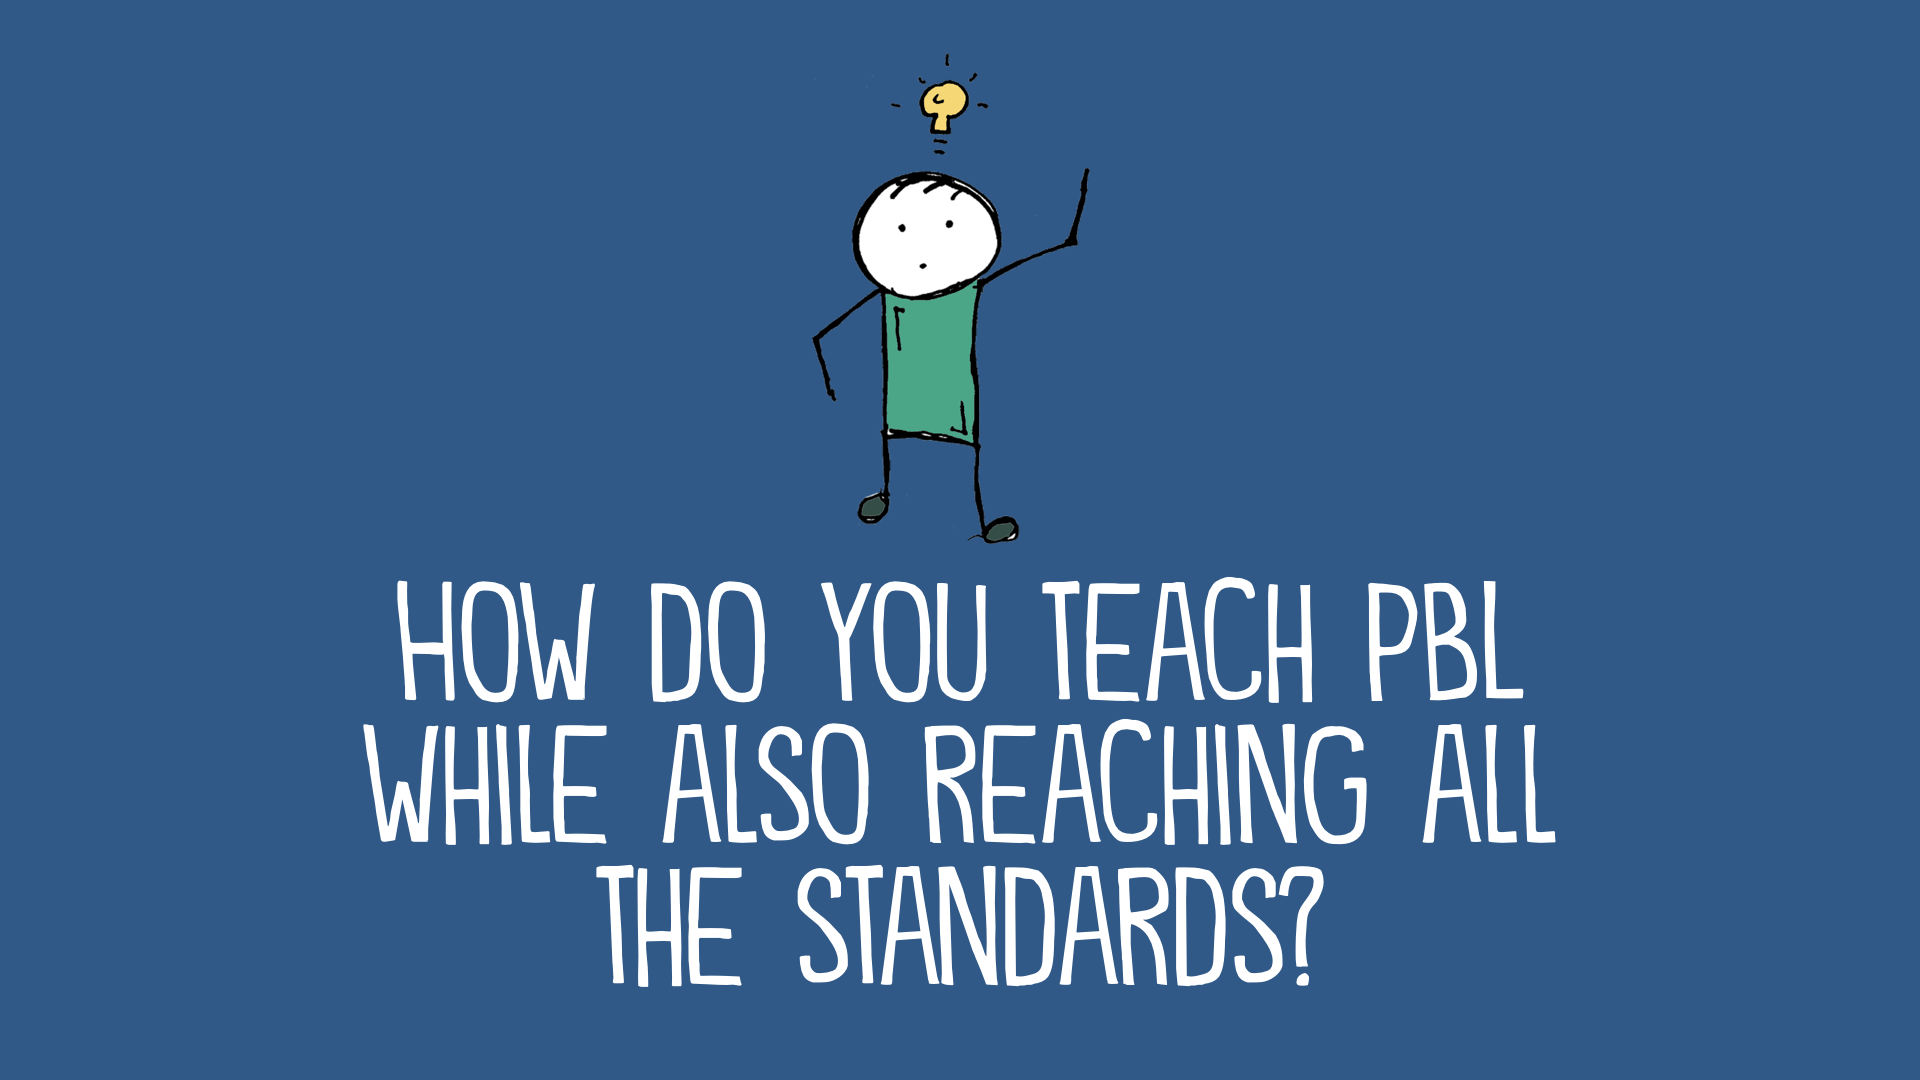 How Do You Teach to the Standards When Doing Project-Based Learning?